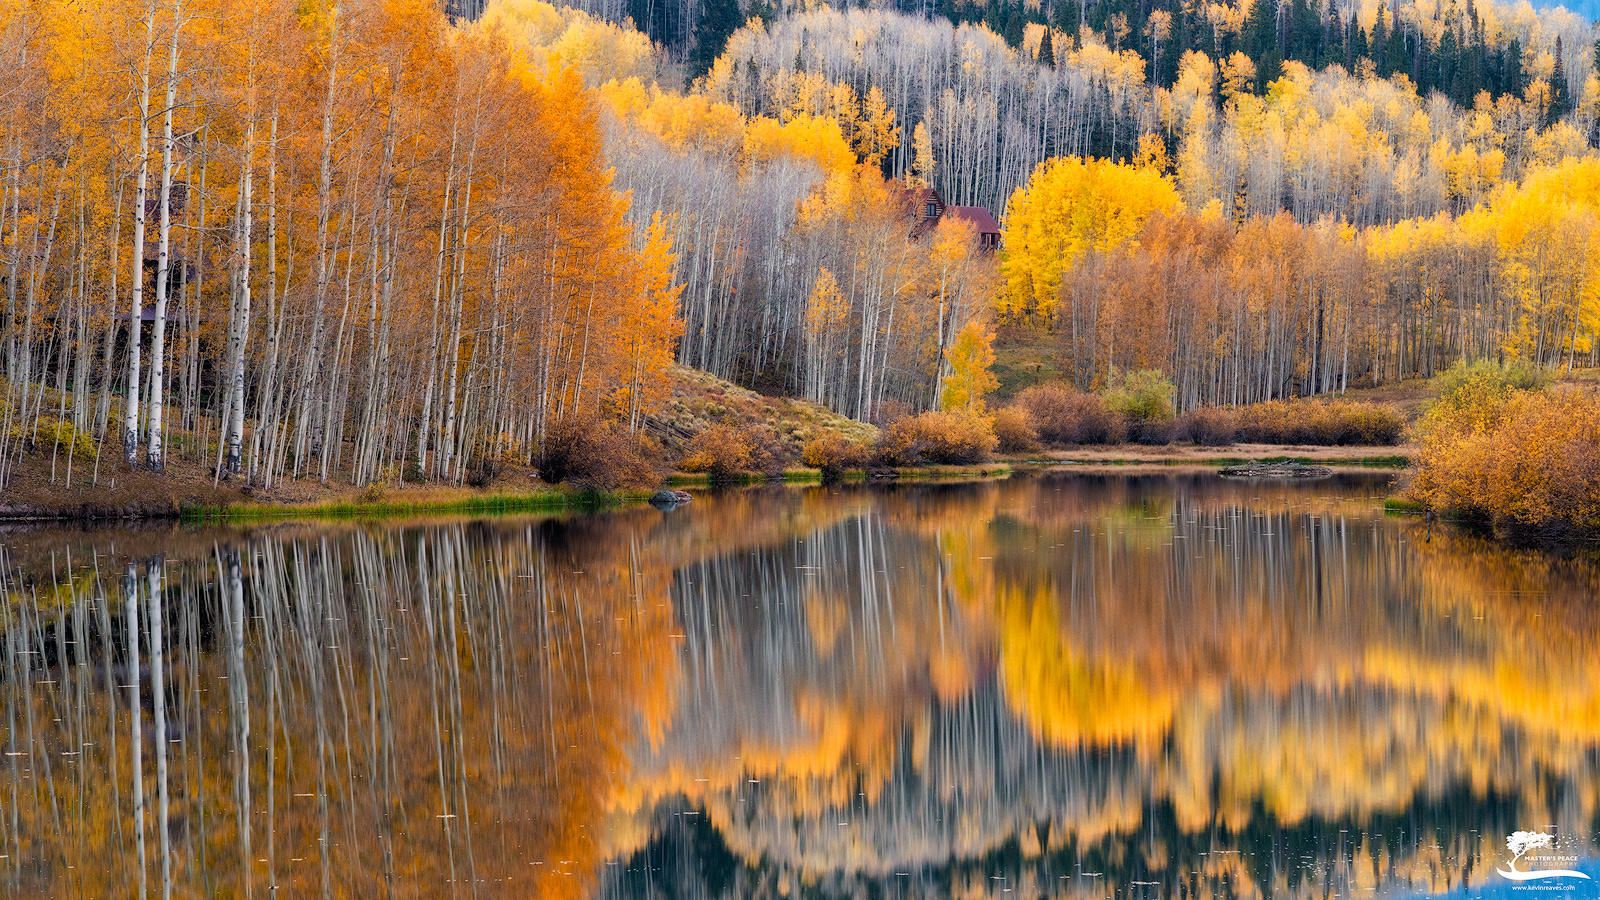 A beautiful and peaceful scene, though only 30 yards from the busy roadway.  The reflections and peak Fall color were right on...